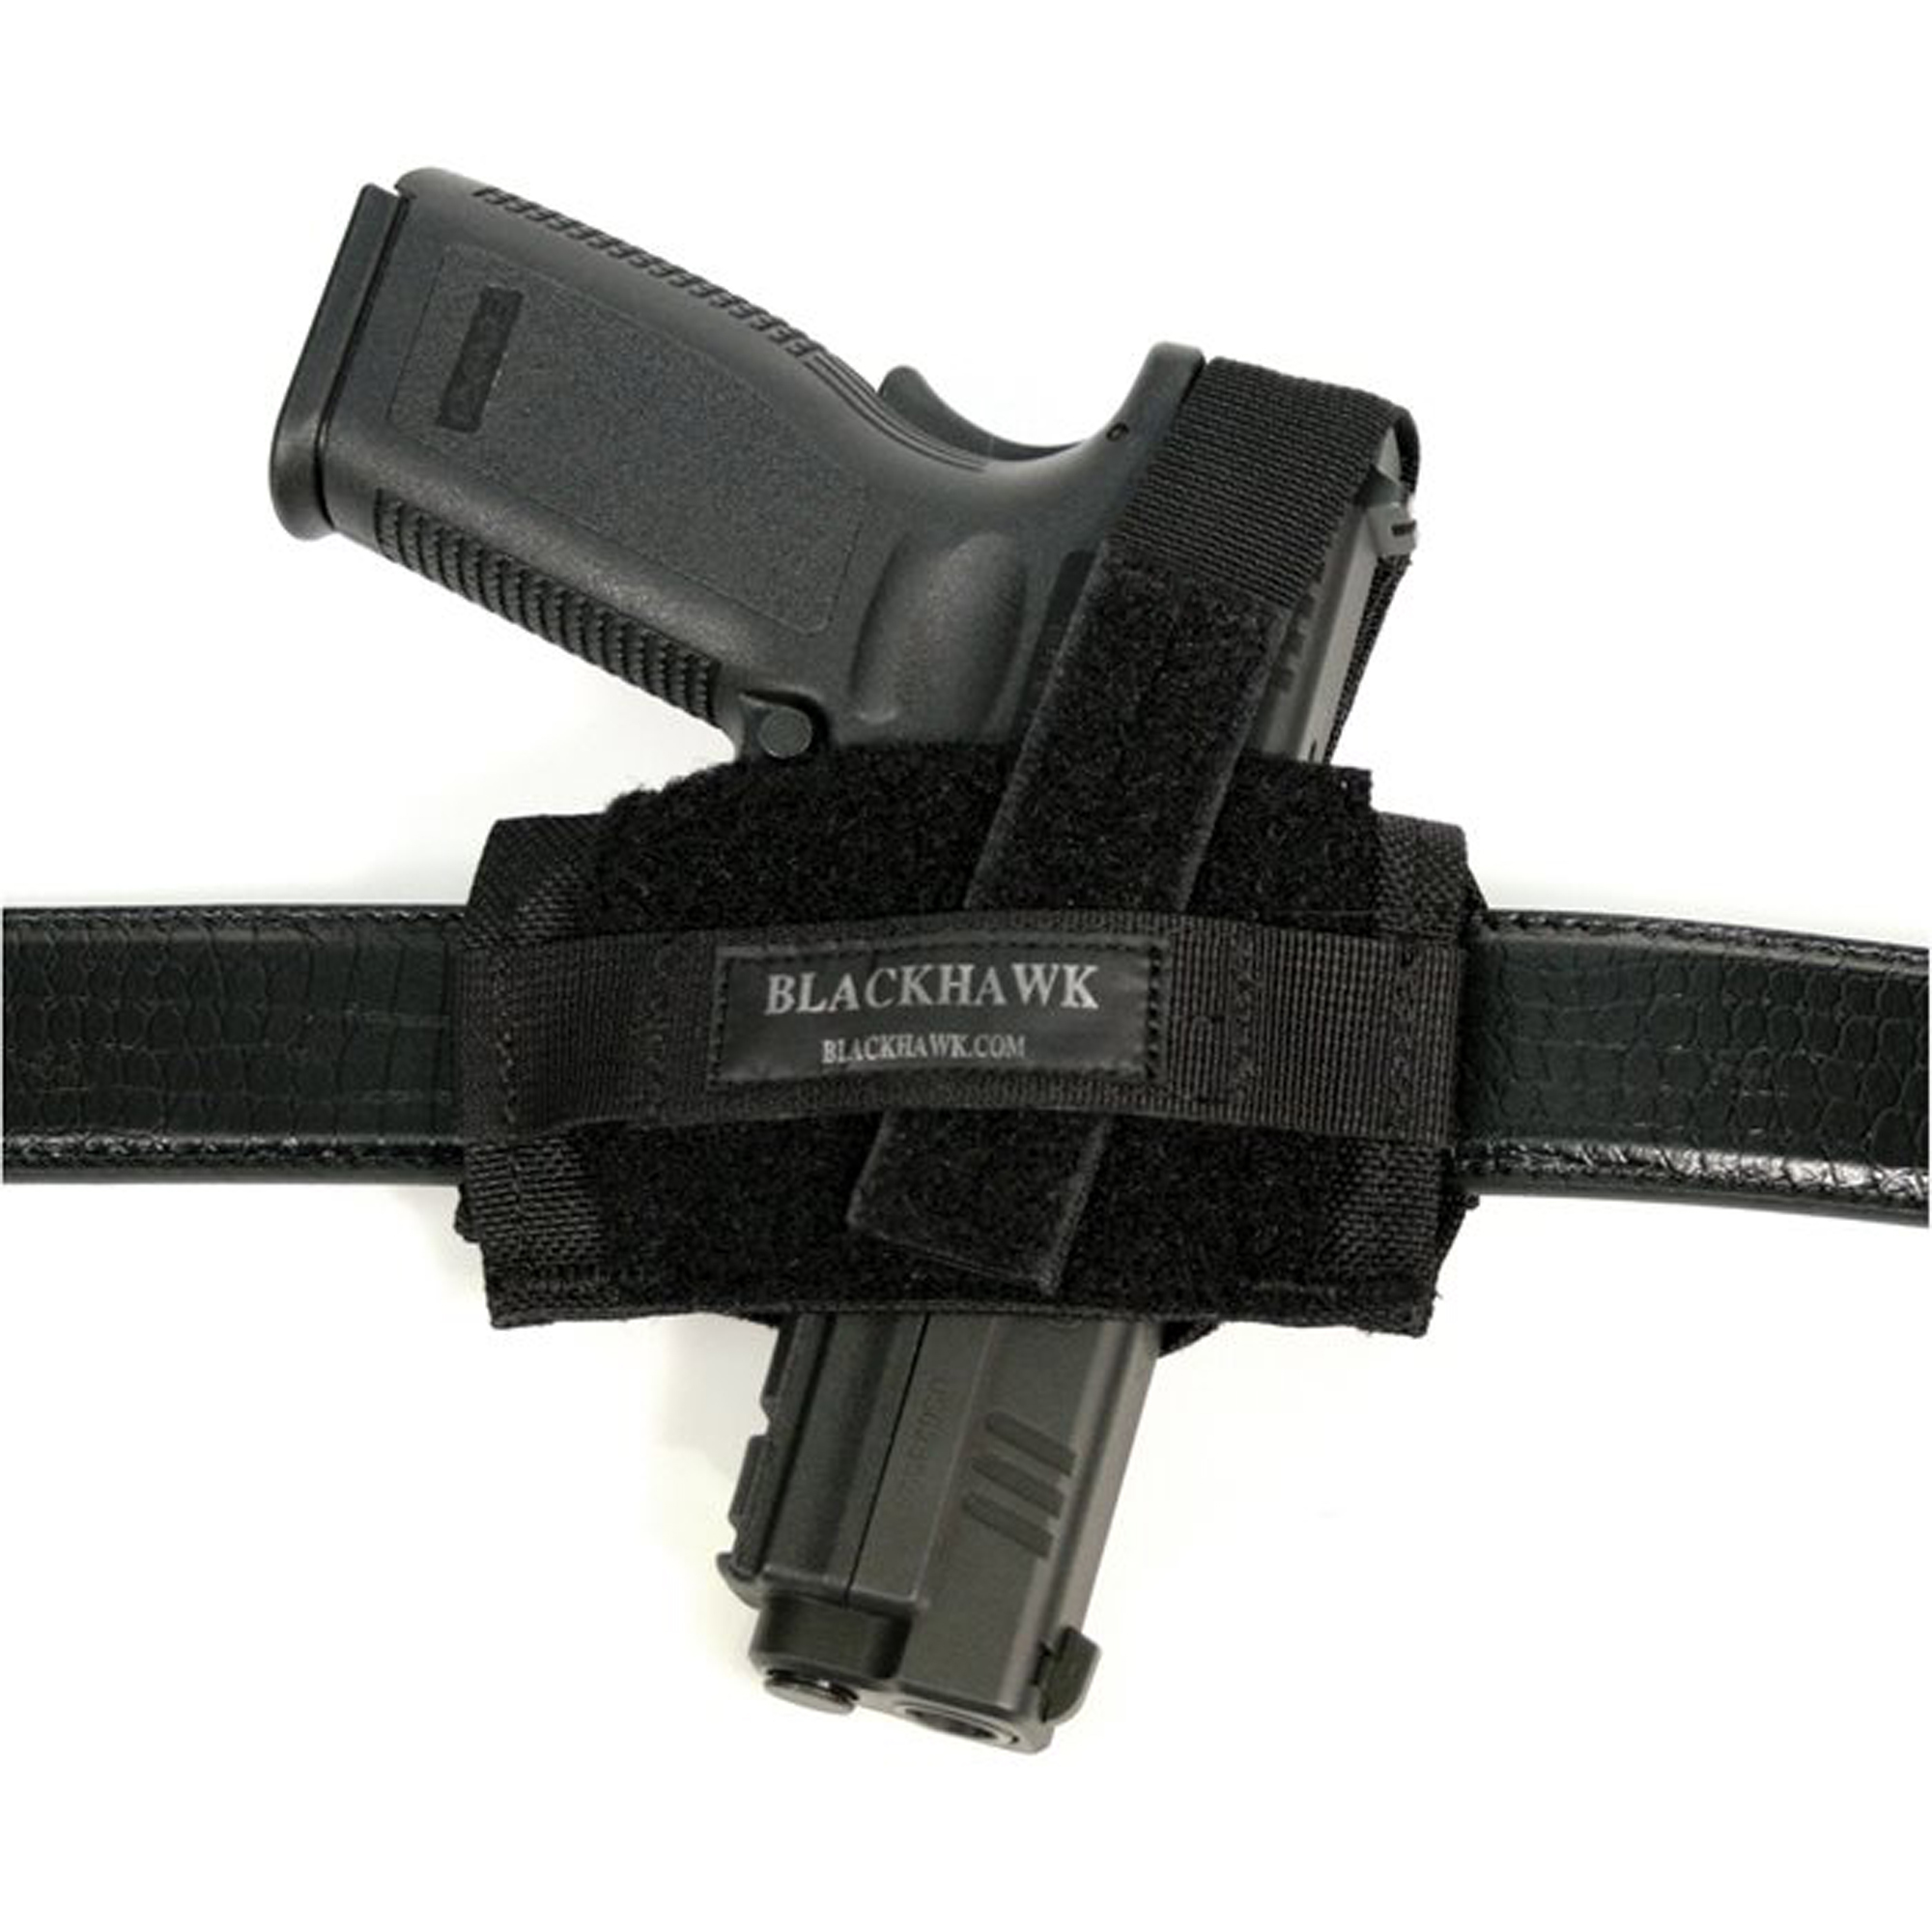 """The Nylon Ambidextrous Flat Belt Holster hugs tight against your body"""" offering a low-profile carry option. Fits belts up to 2"""" wide and features an adjustable and reversible thumb break."""